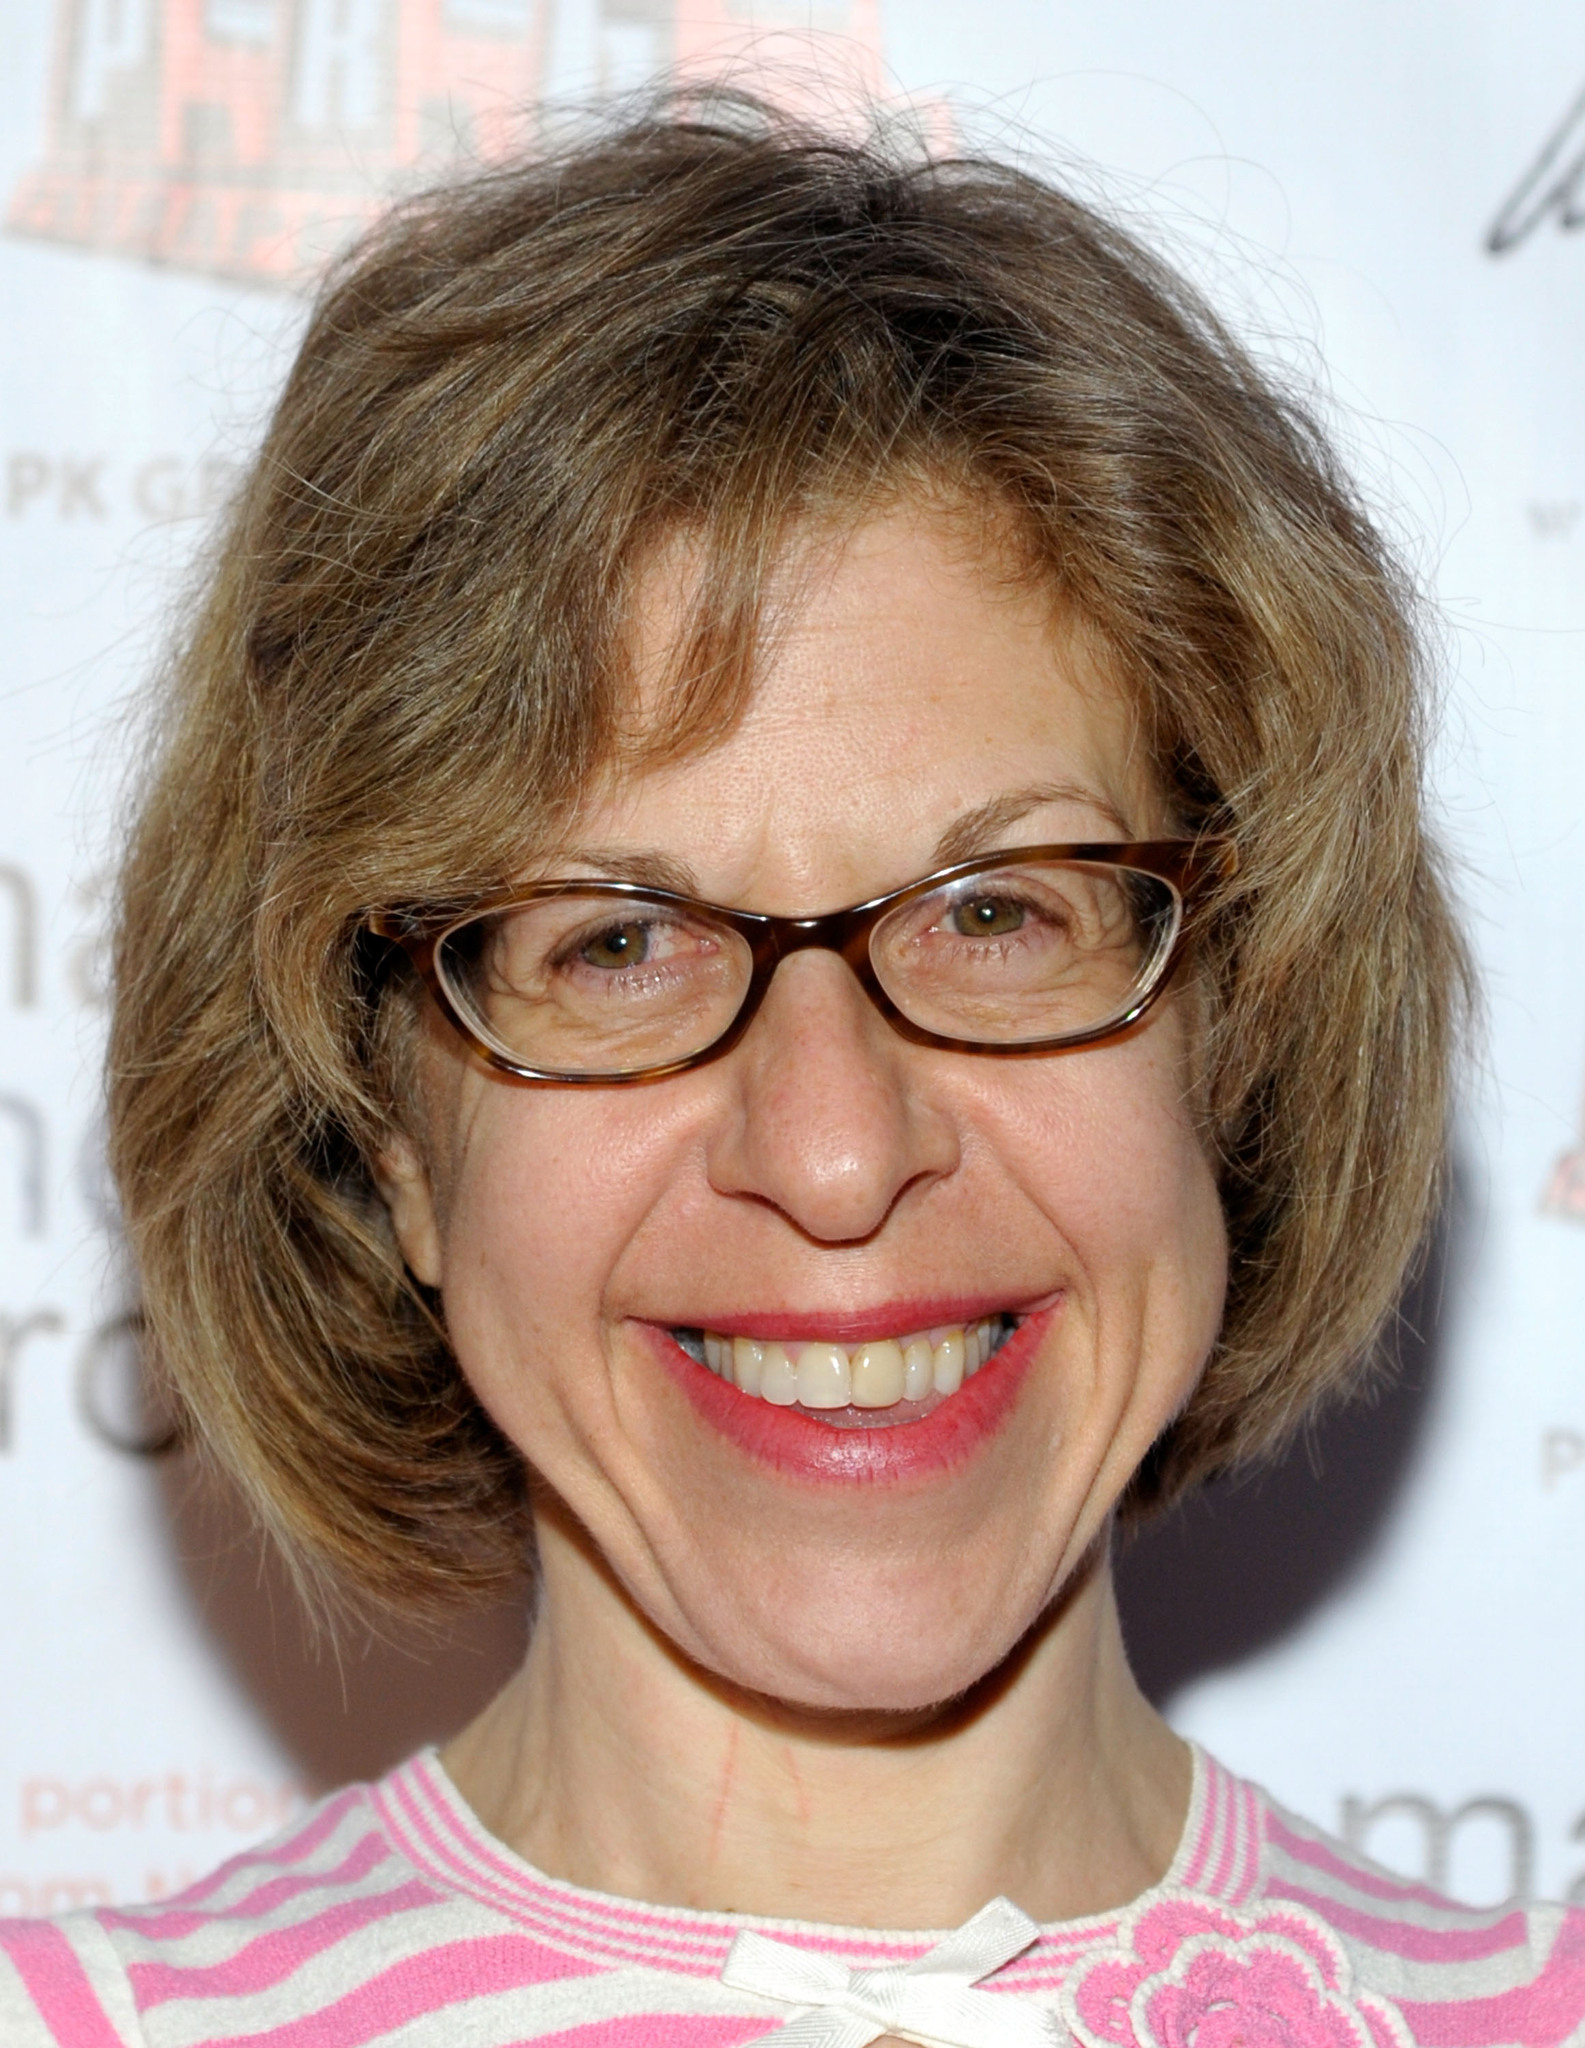 Jackie Hoffman born November 29, 1960 (age 57)